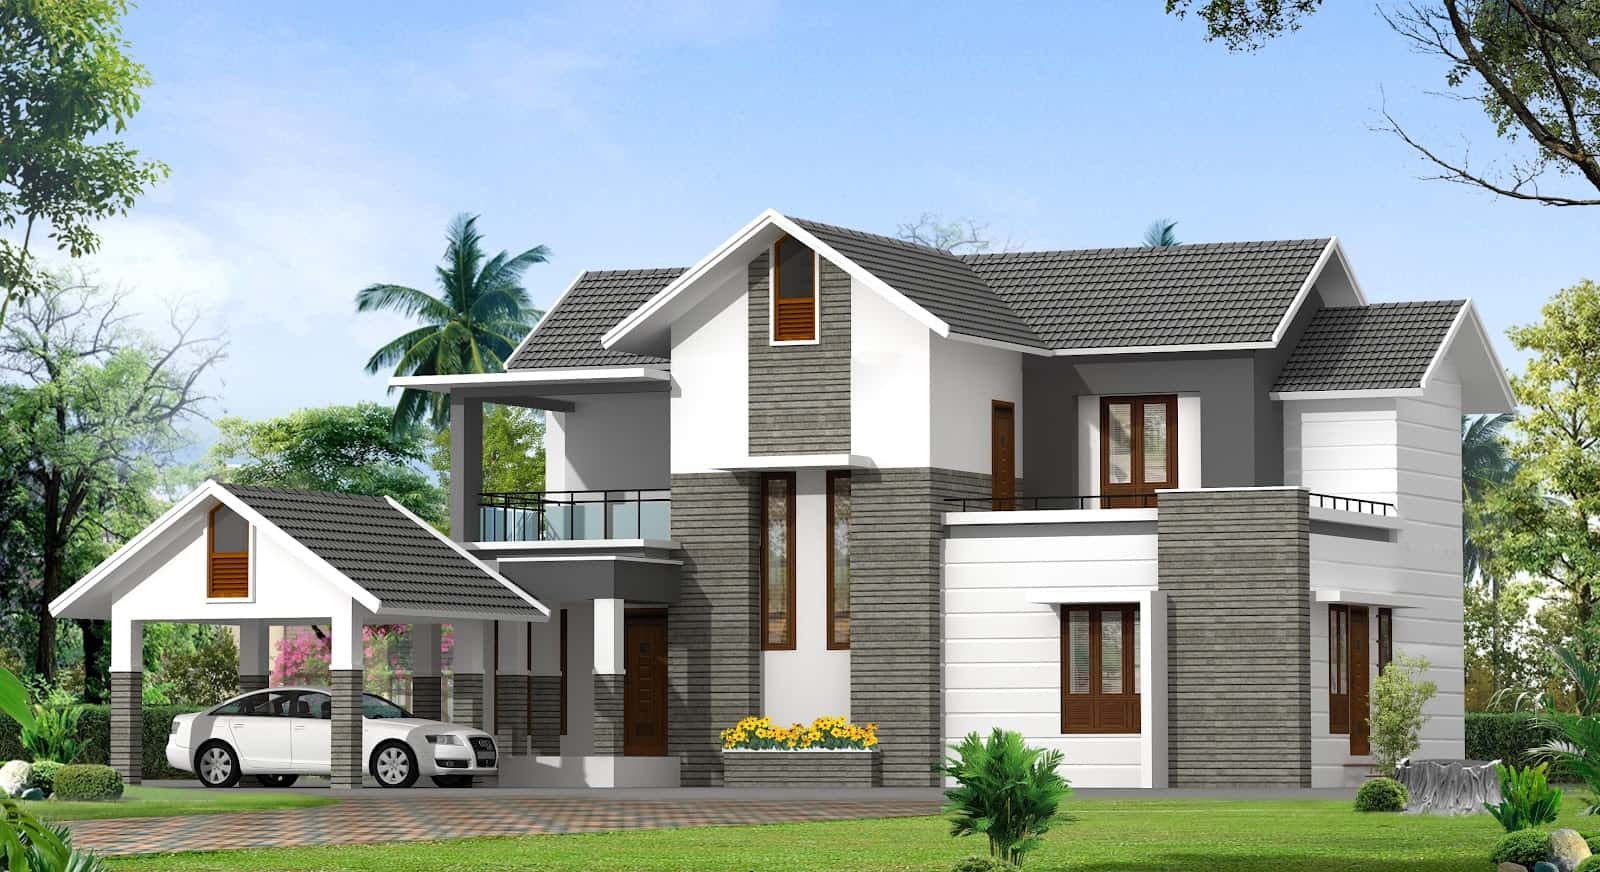 Contemporary House Plans Two-Story